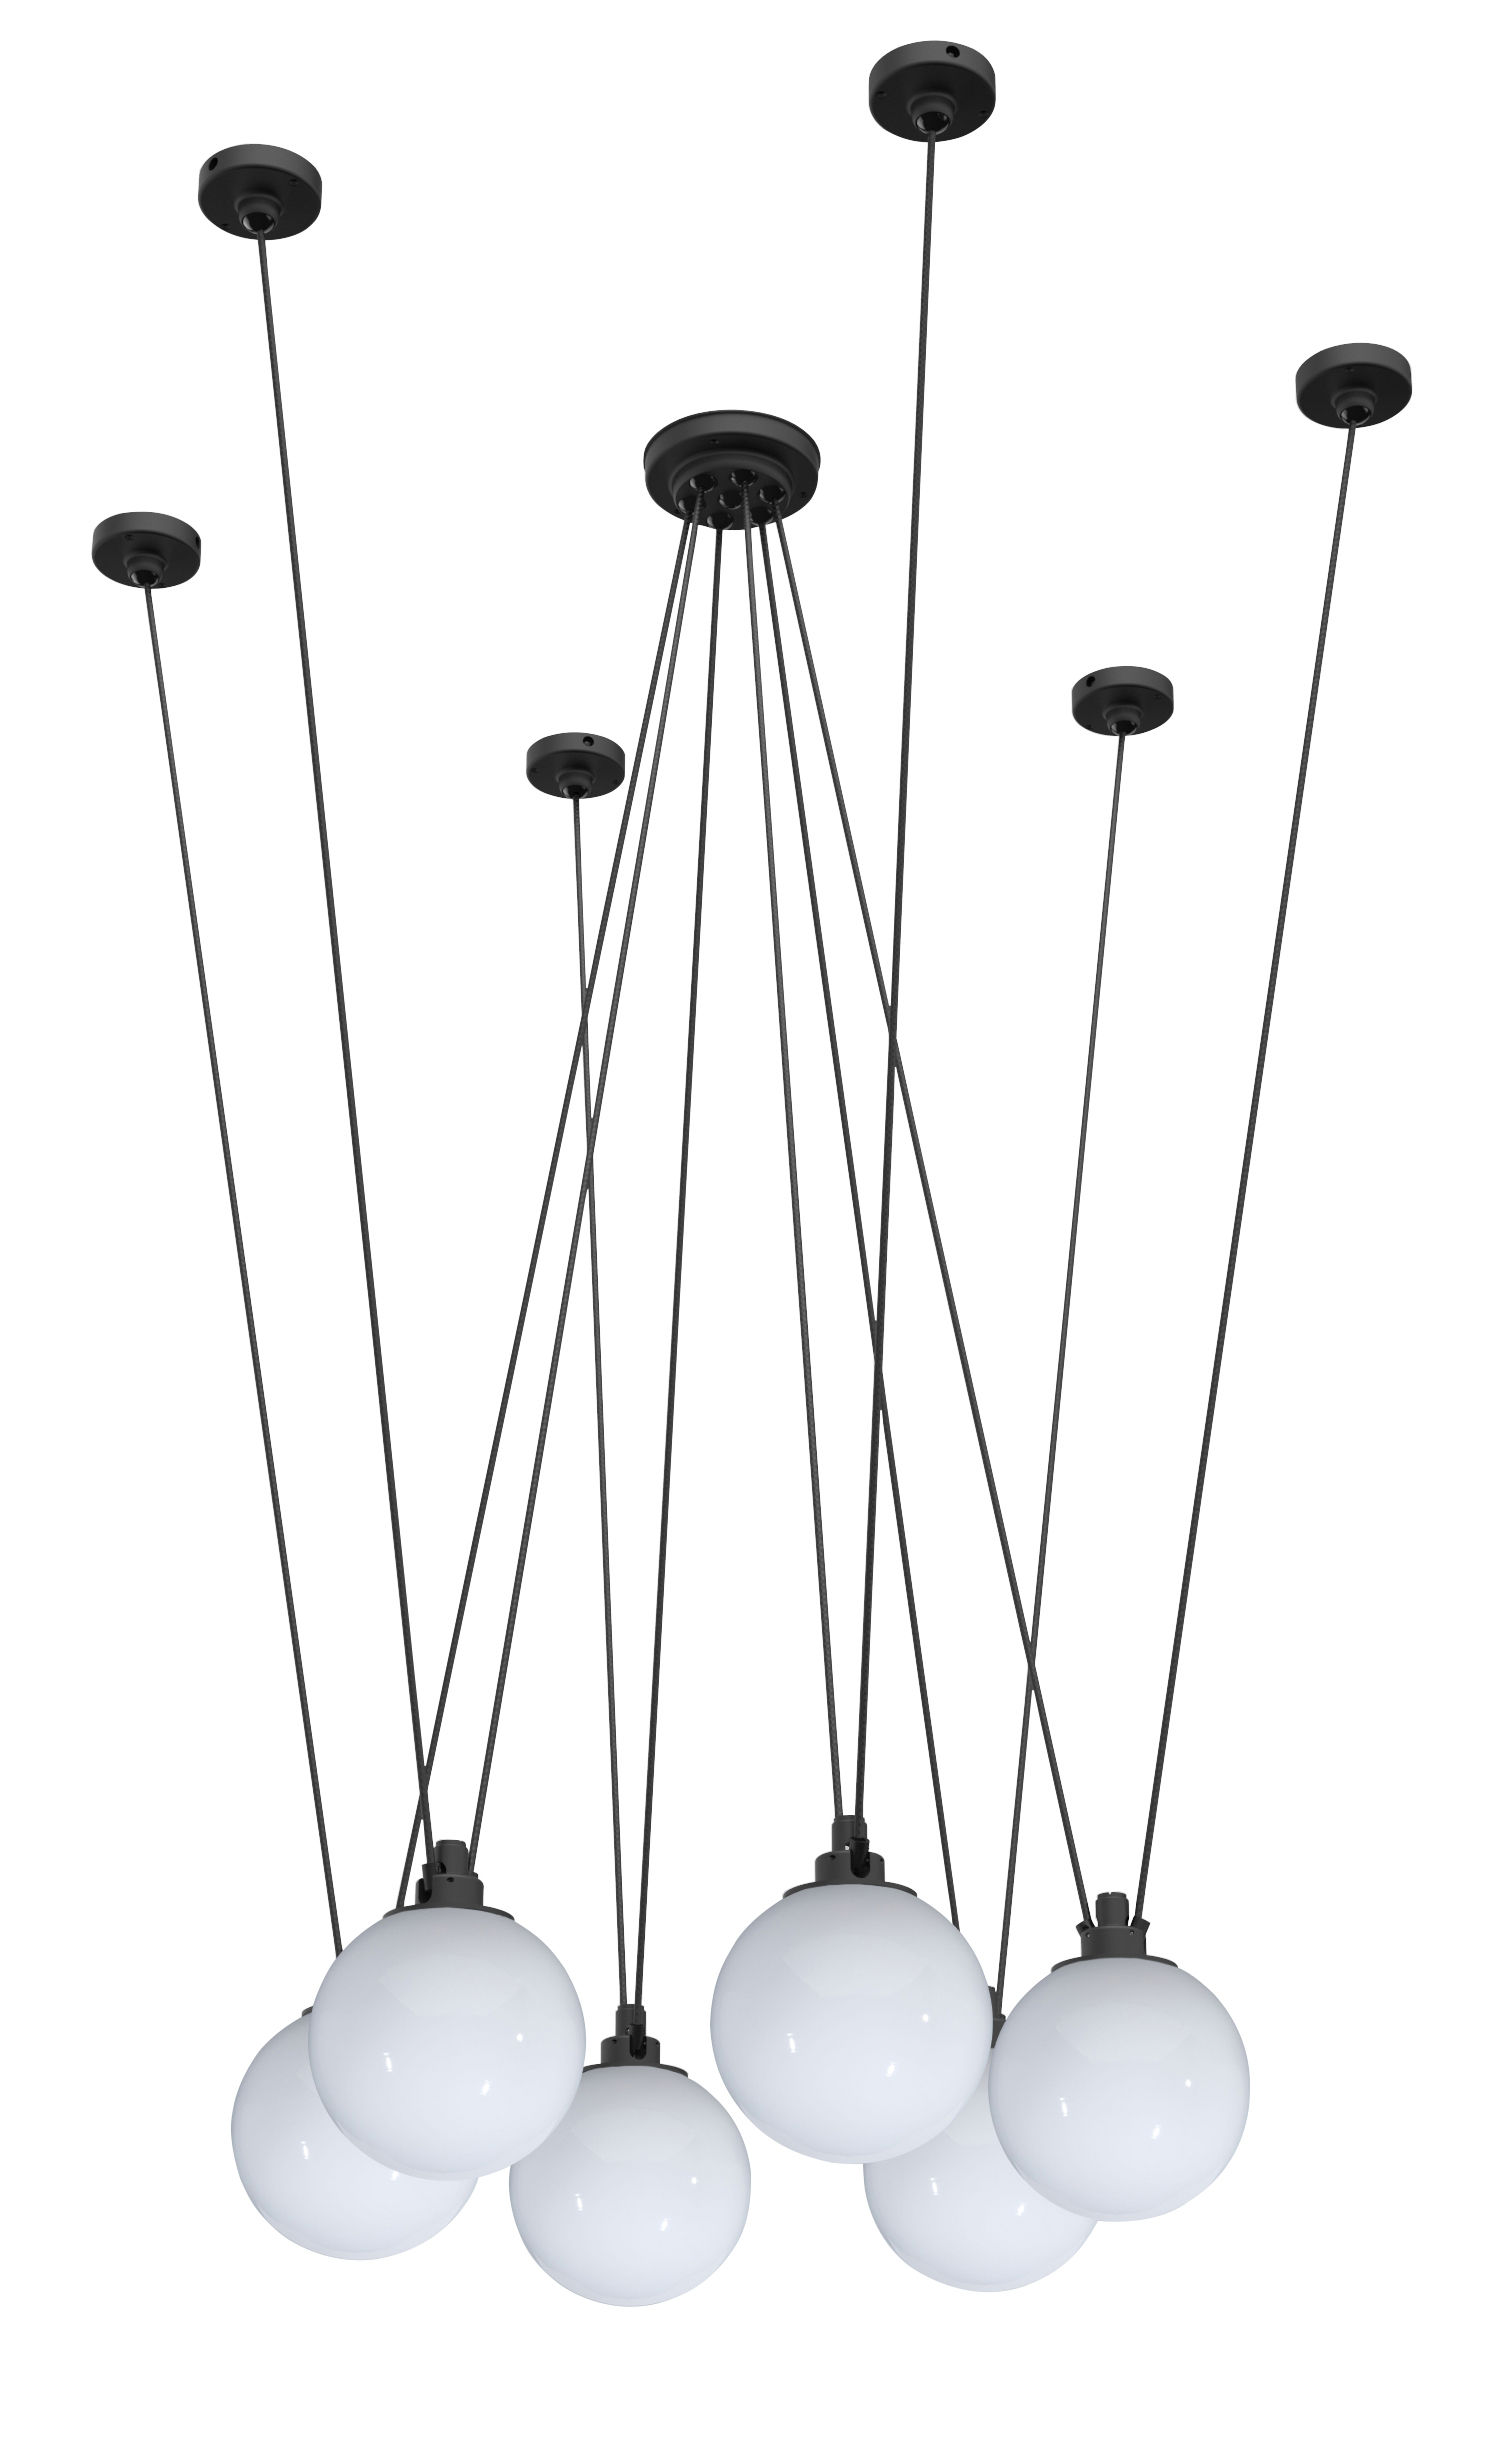 Lighting - Pendant Lighting - Acrobate N°326 Pendant - / Lampes Gras - 6 glass shades Ø 25 cm by DCW éditions - White - Glass